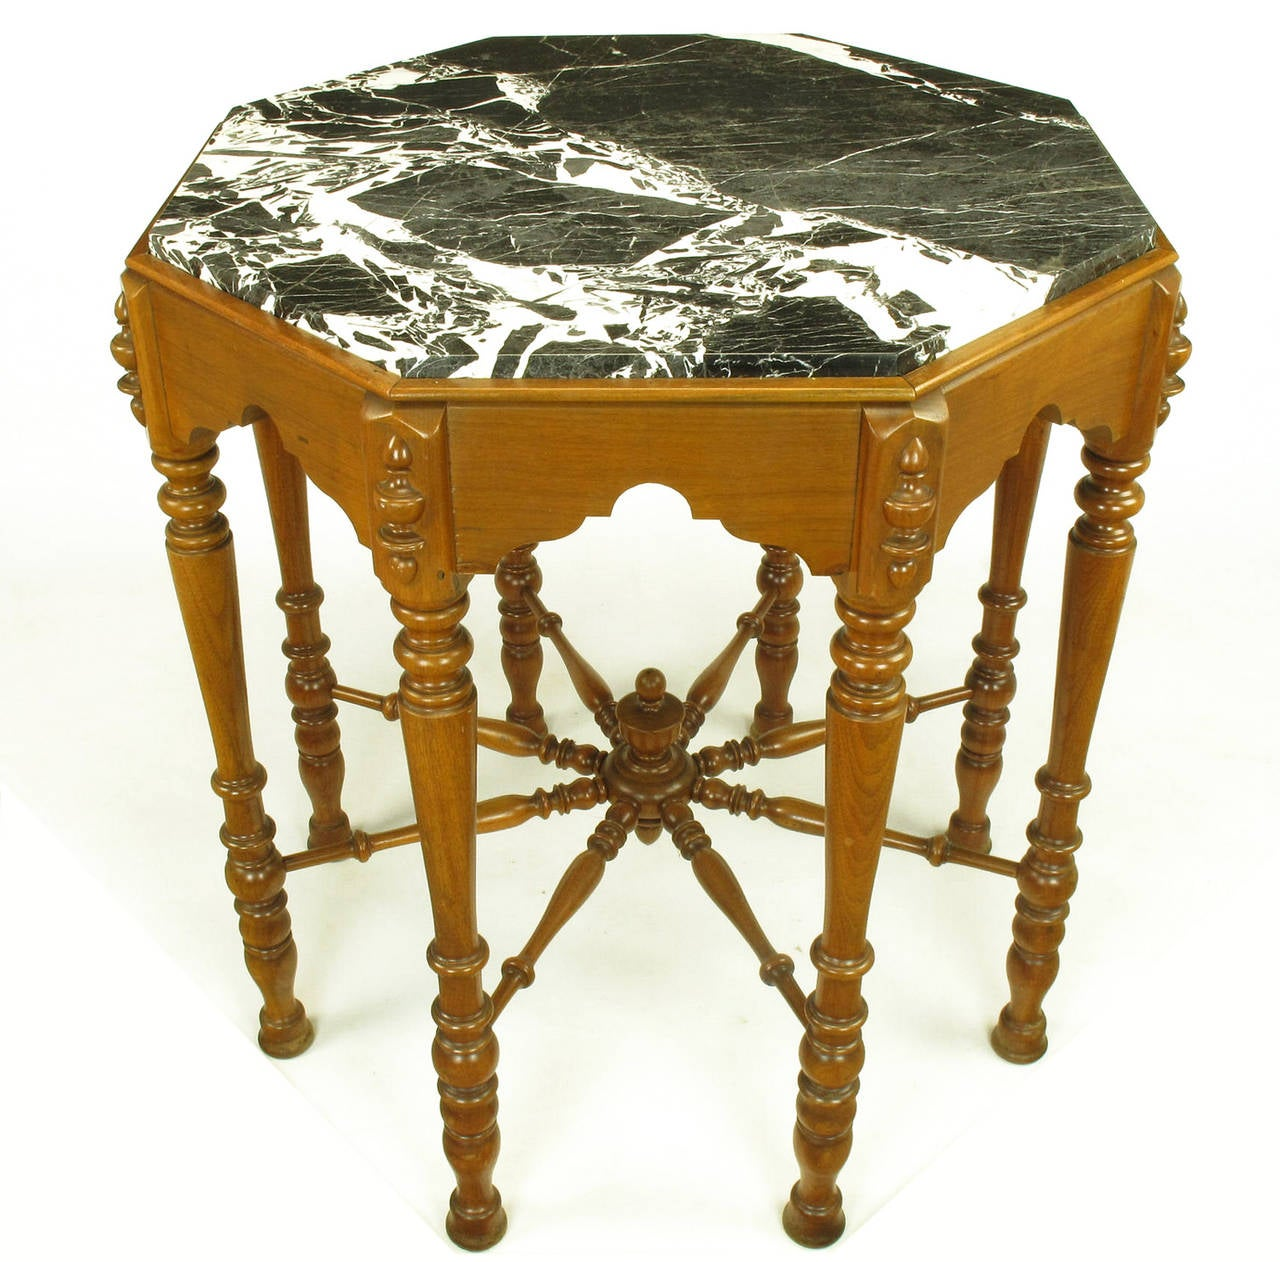 Walnut Eastlake/ Victorian transitional center table or side table with octagonal black and white marble top and eight carved baluster style legs. Ships wheel style center stretcher.